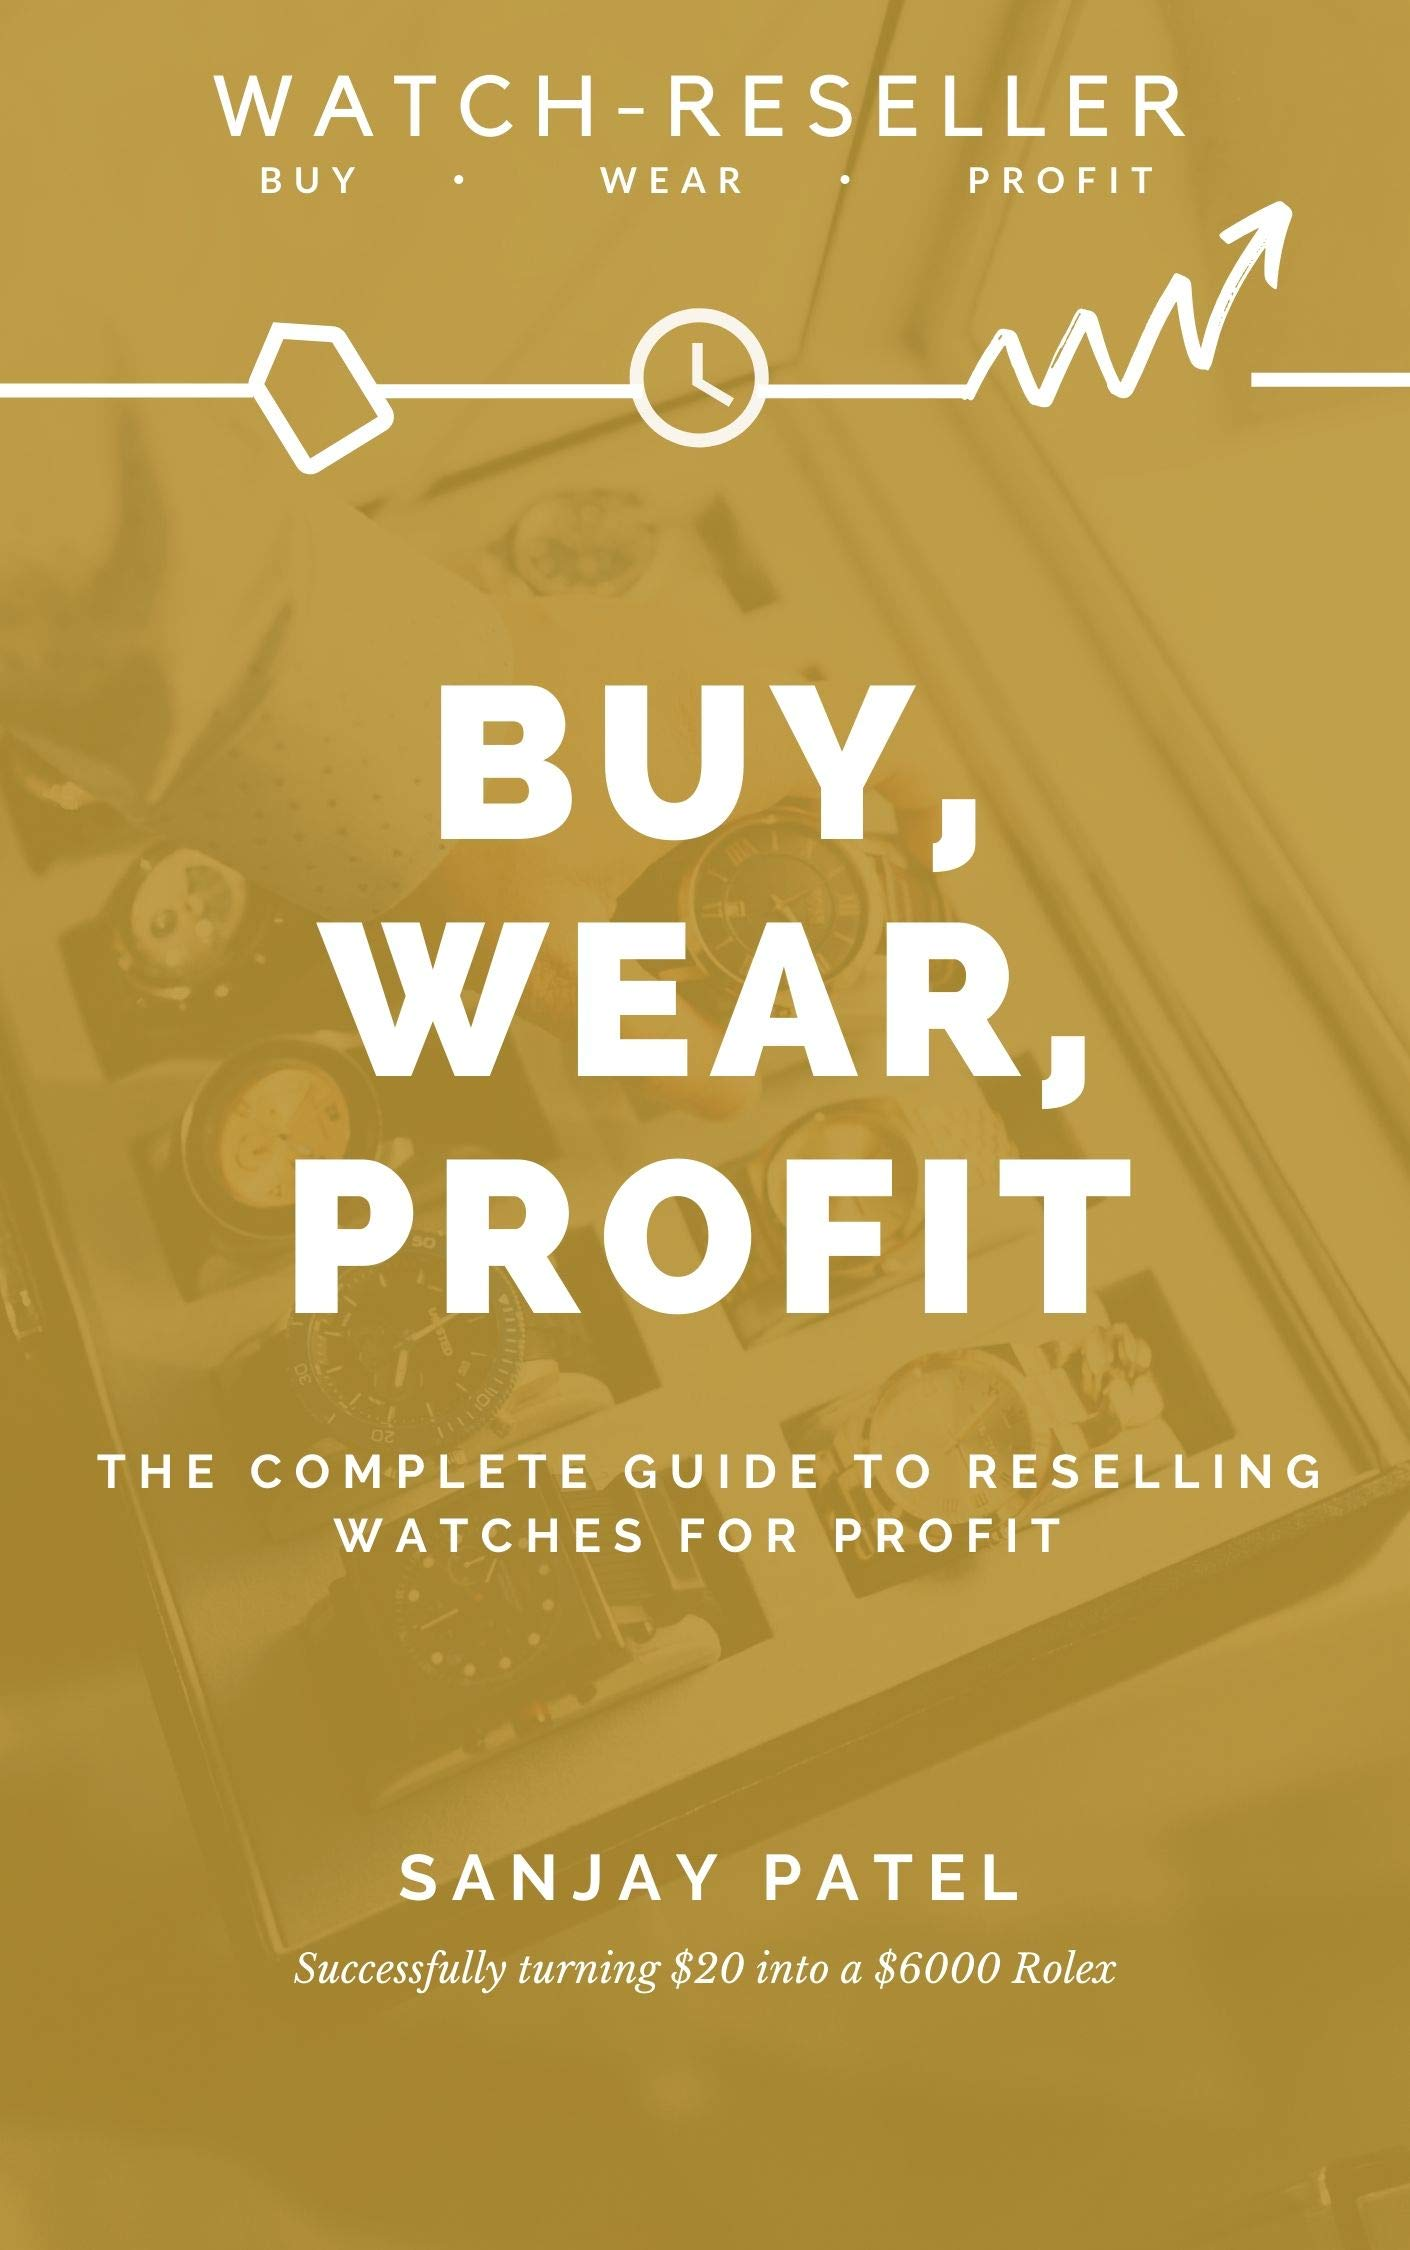 Watch Reseller: Buy, Wear, Profit: A Guide to Reselling Watches for Profit